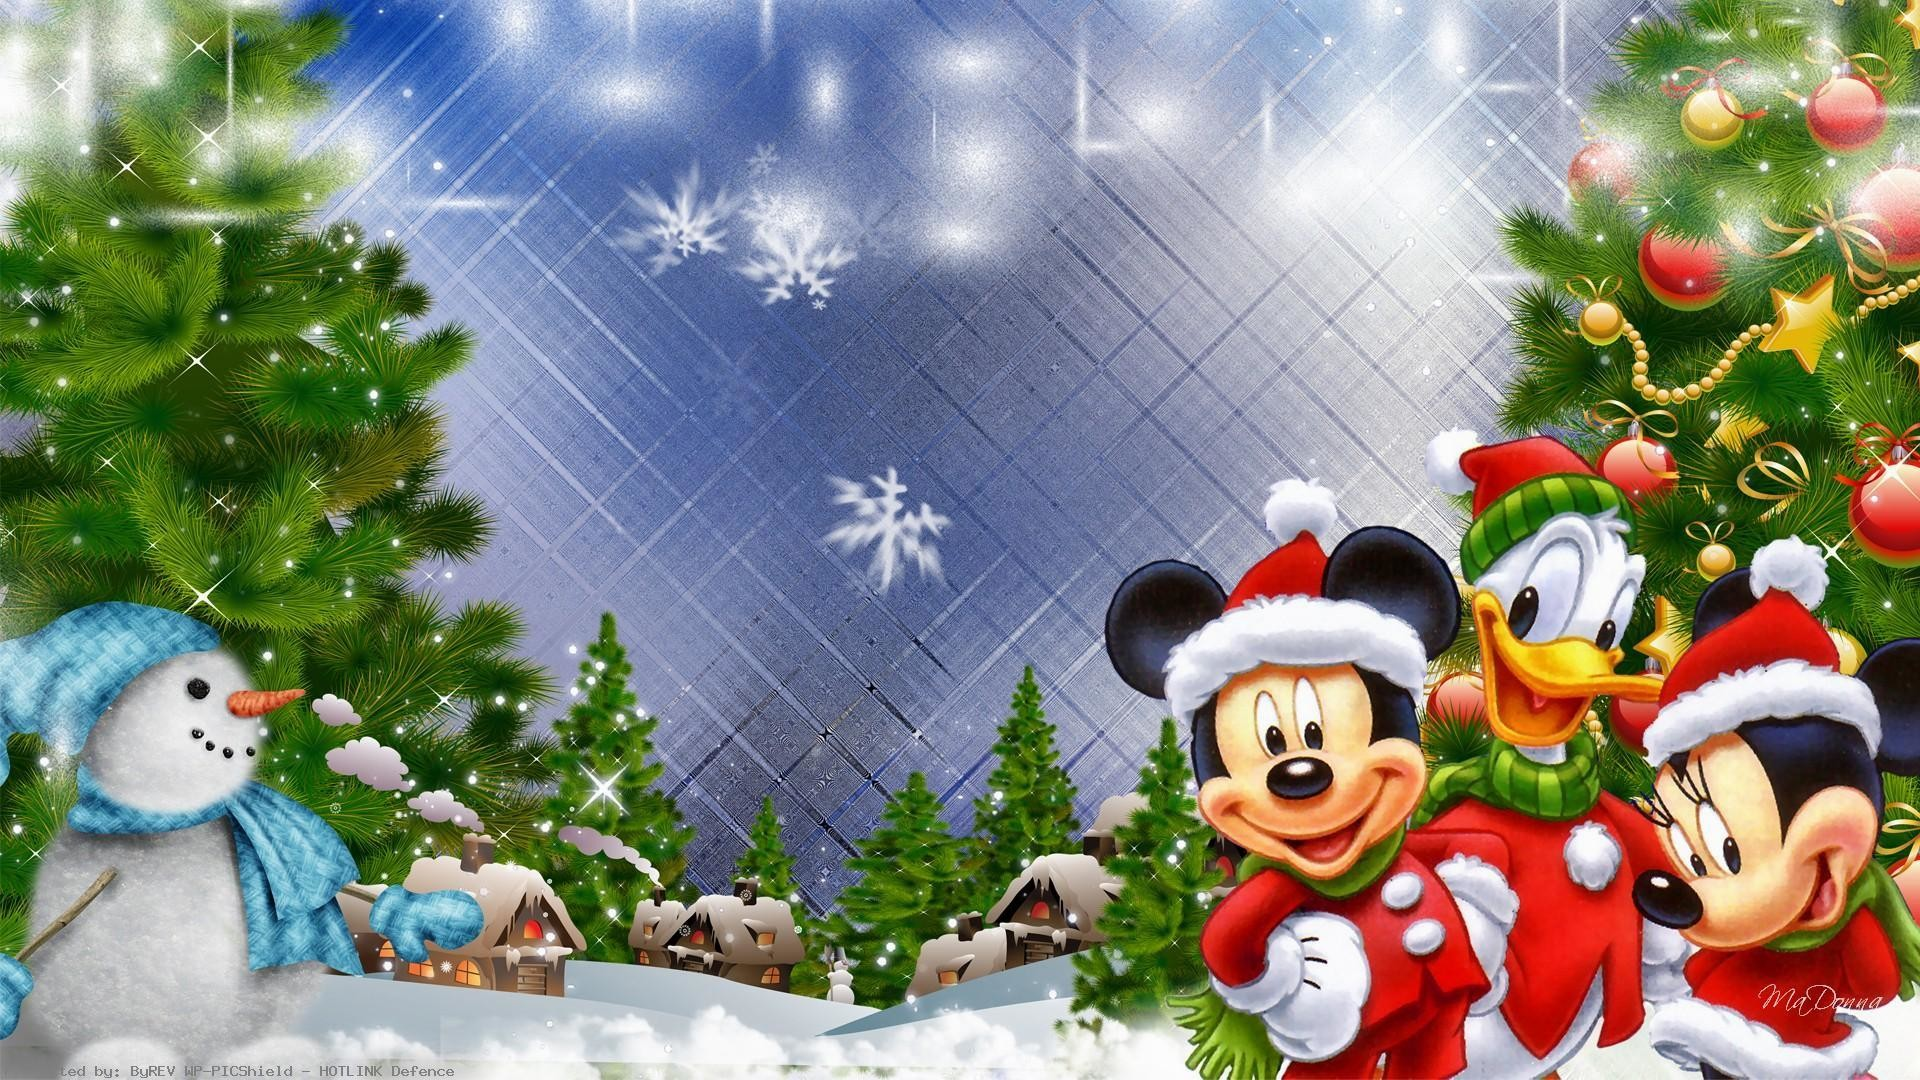 1920x1080 Xmas-Stuff-For-Merry-Christmas-Mickey-Mouse-wallpaper-